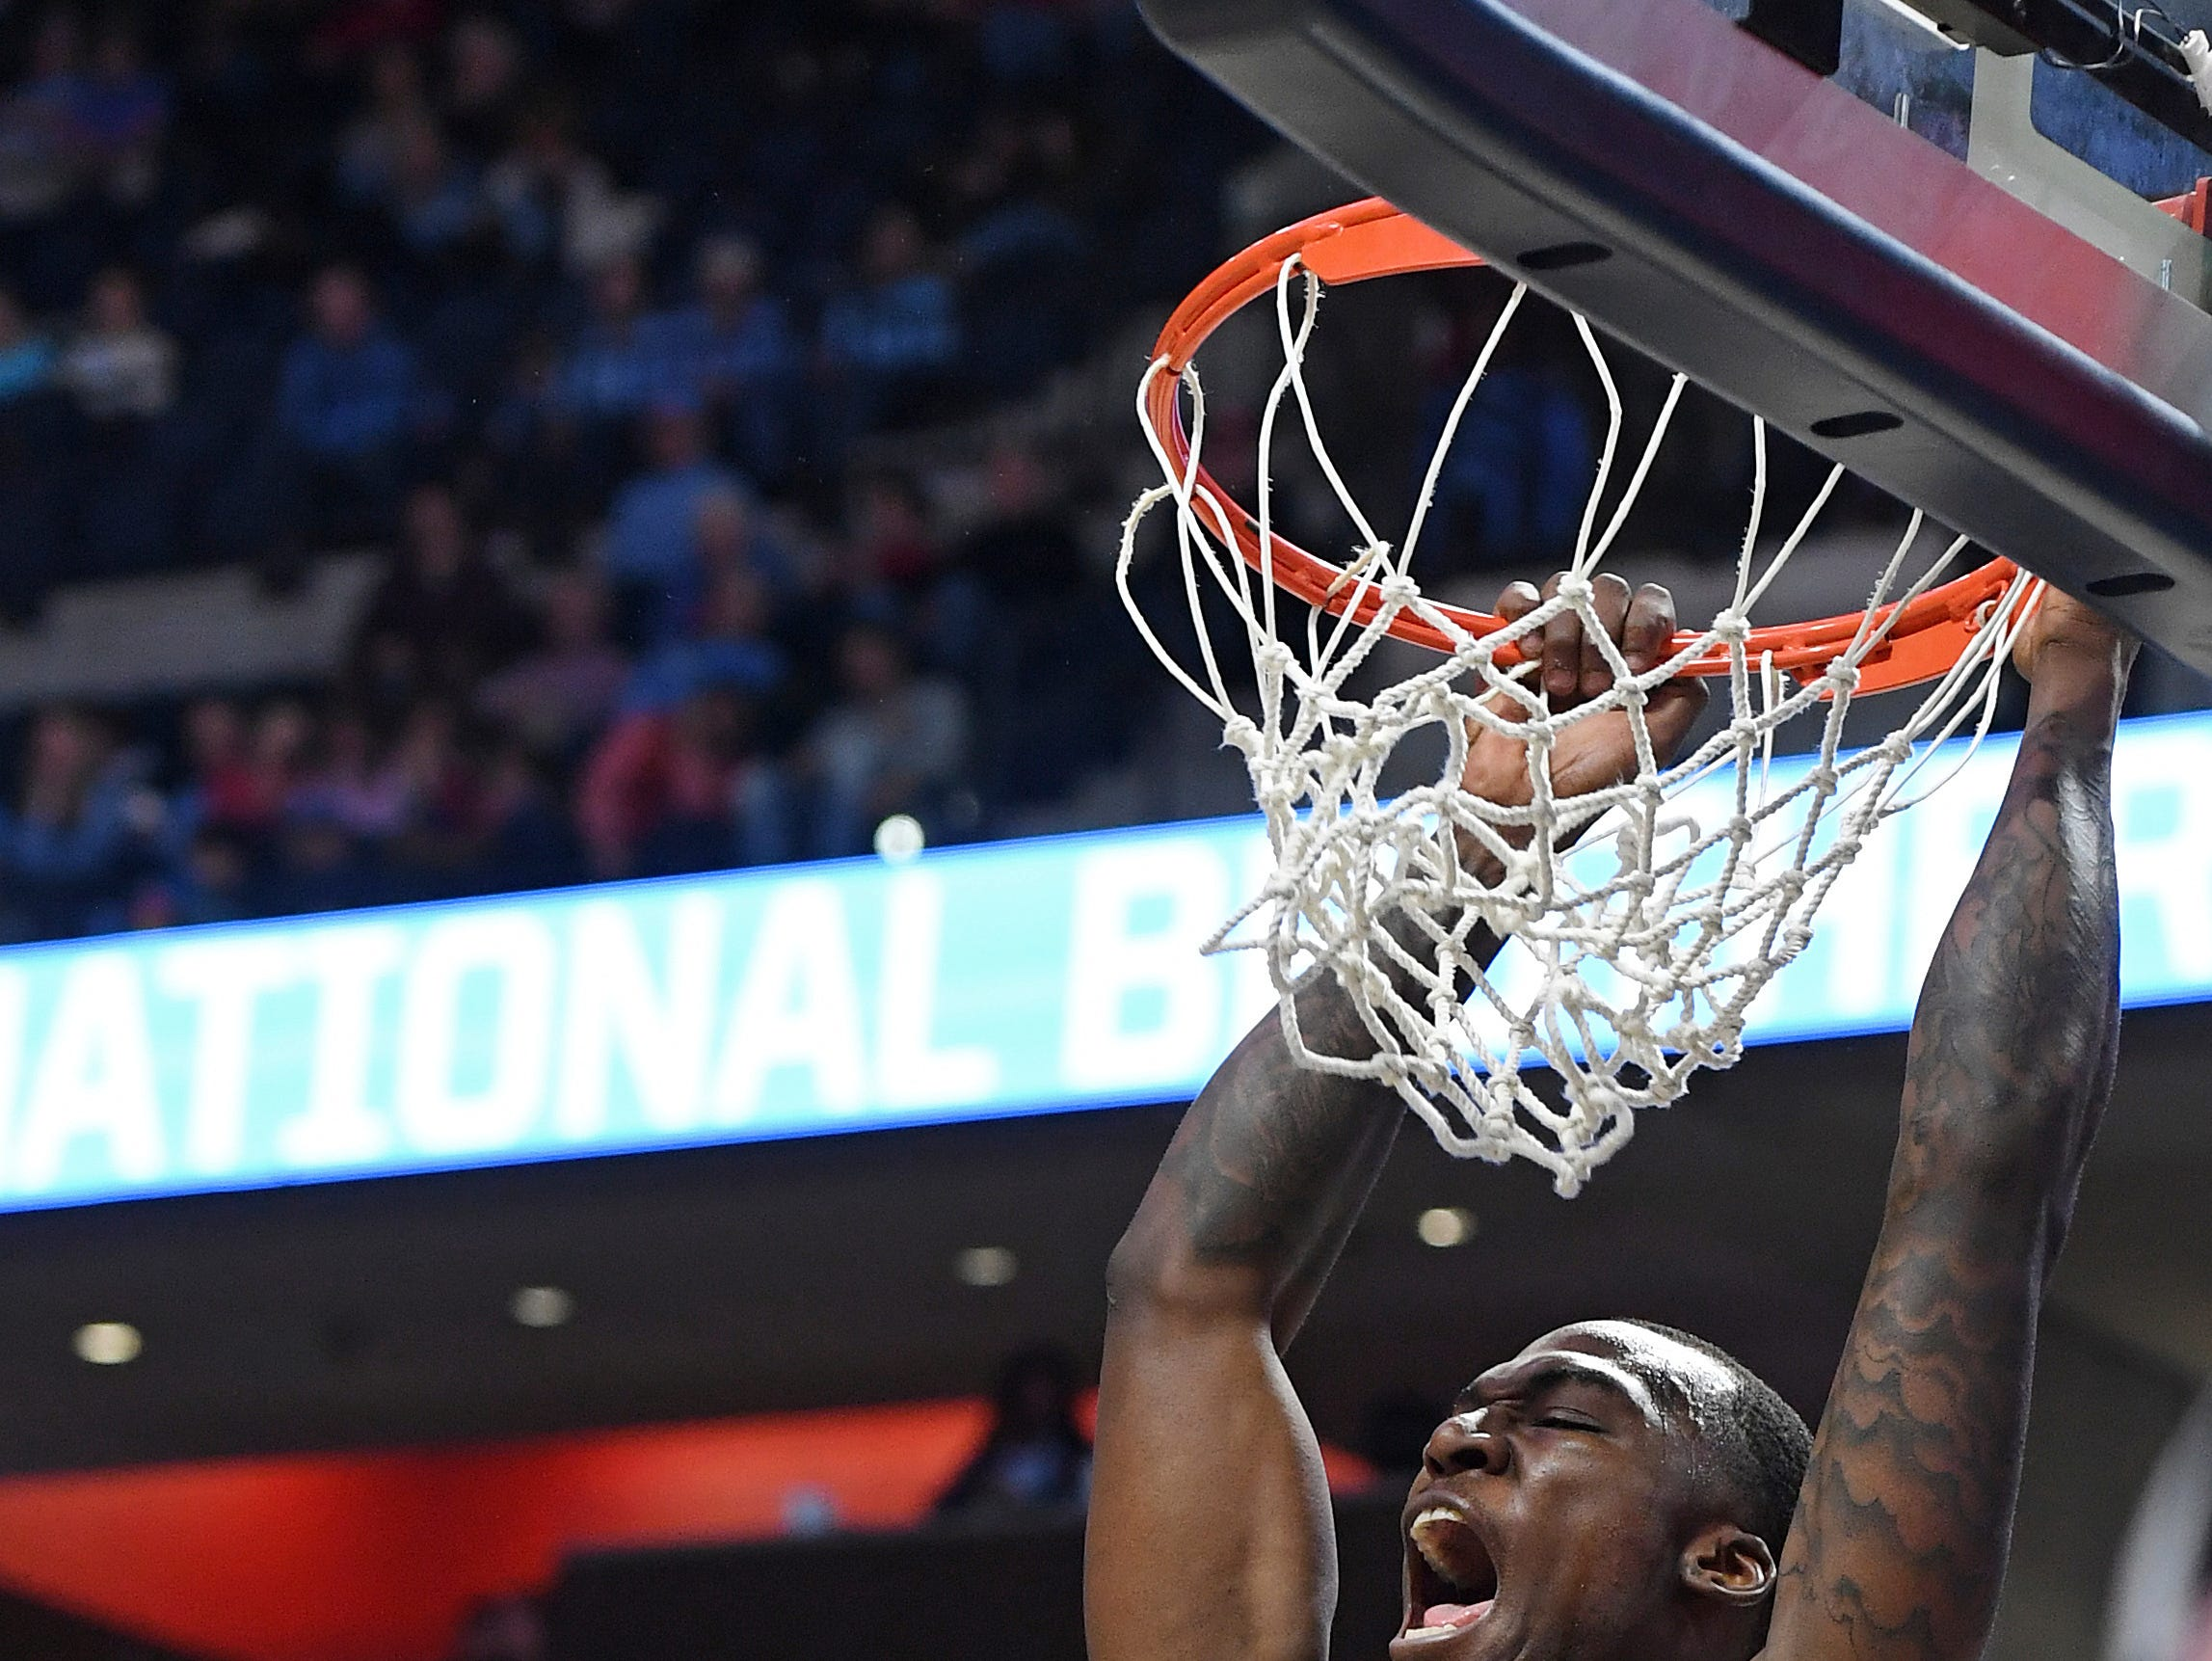 Iowa State forward Cameron Lard (2) dunks the ball over Mississippi guard Devontae Shuler (2) during the second half of an NCAA college basketball game in Oxford, Miss., Saturday, Jan. 26, 2019. Iowa State won 87-73.